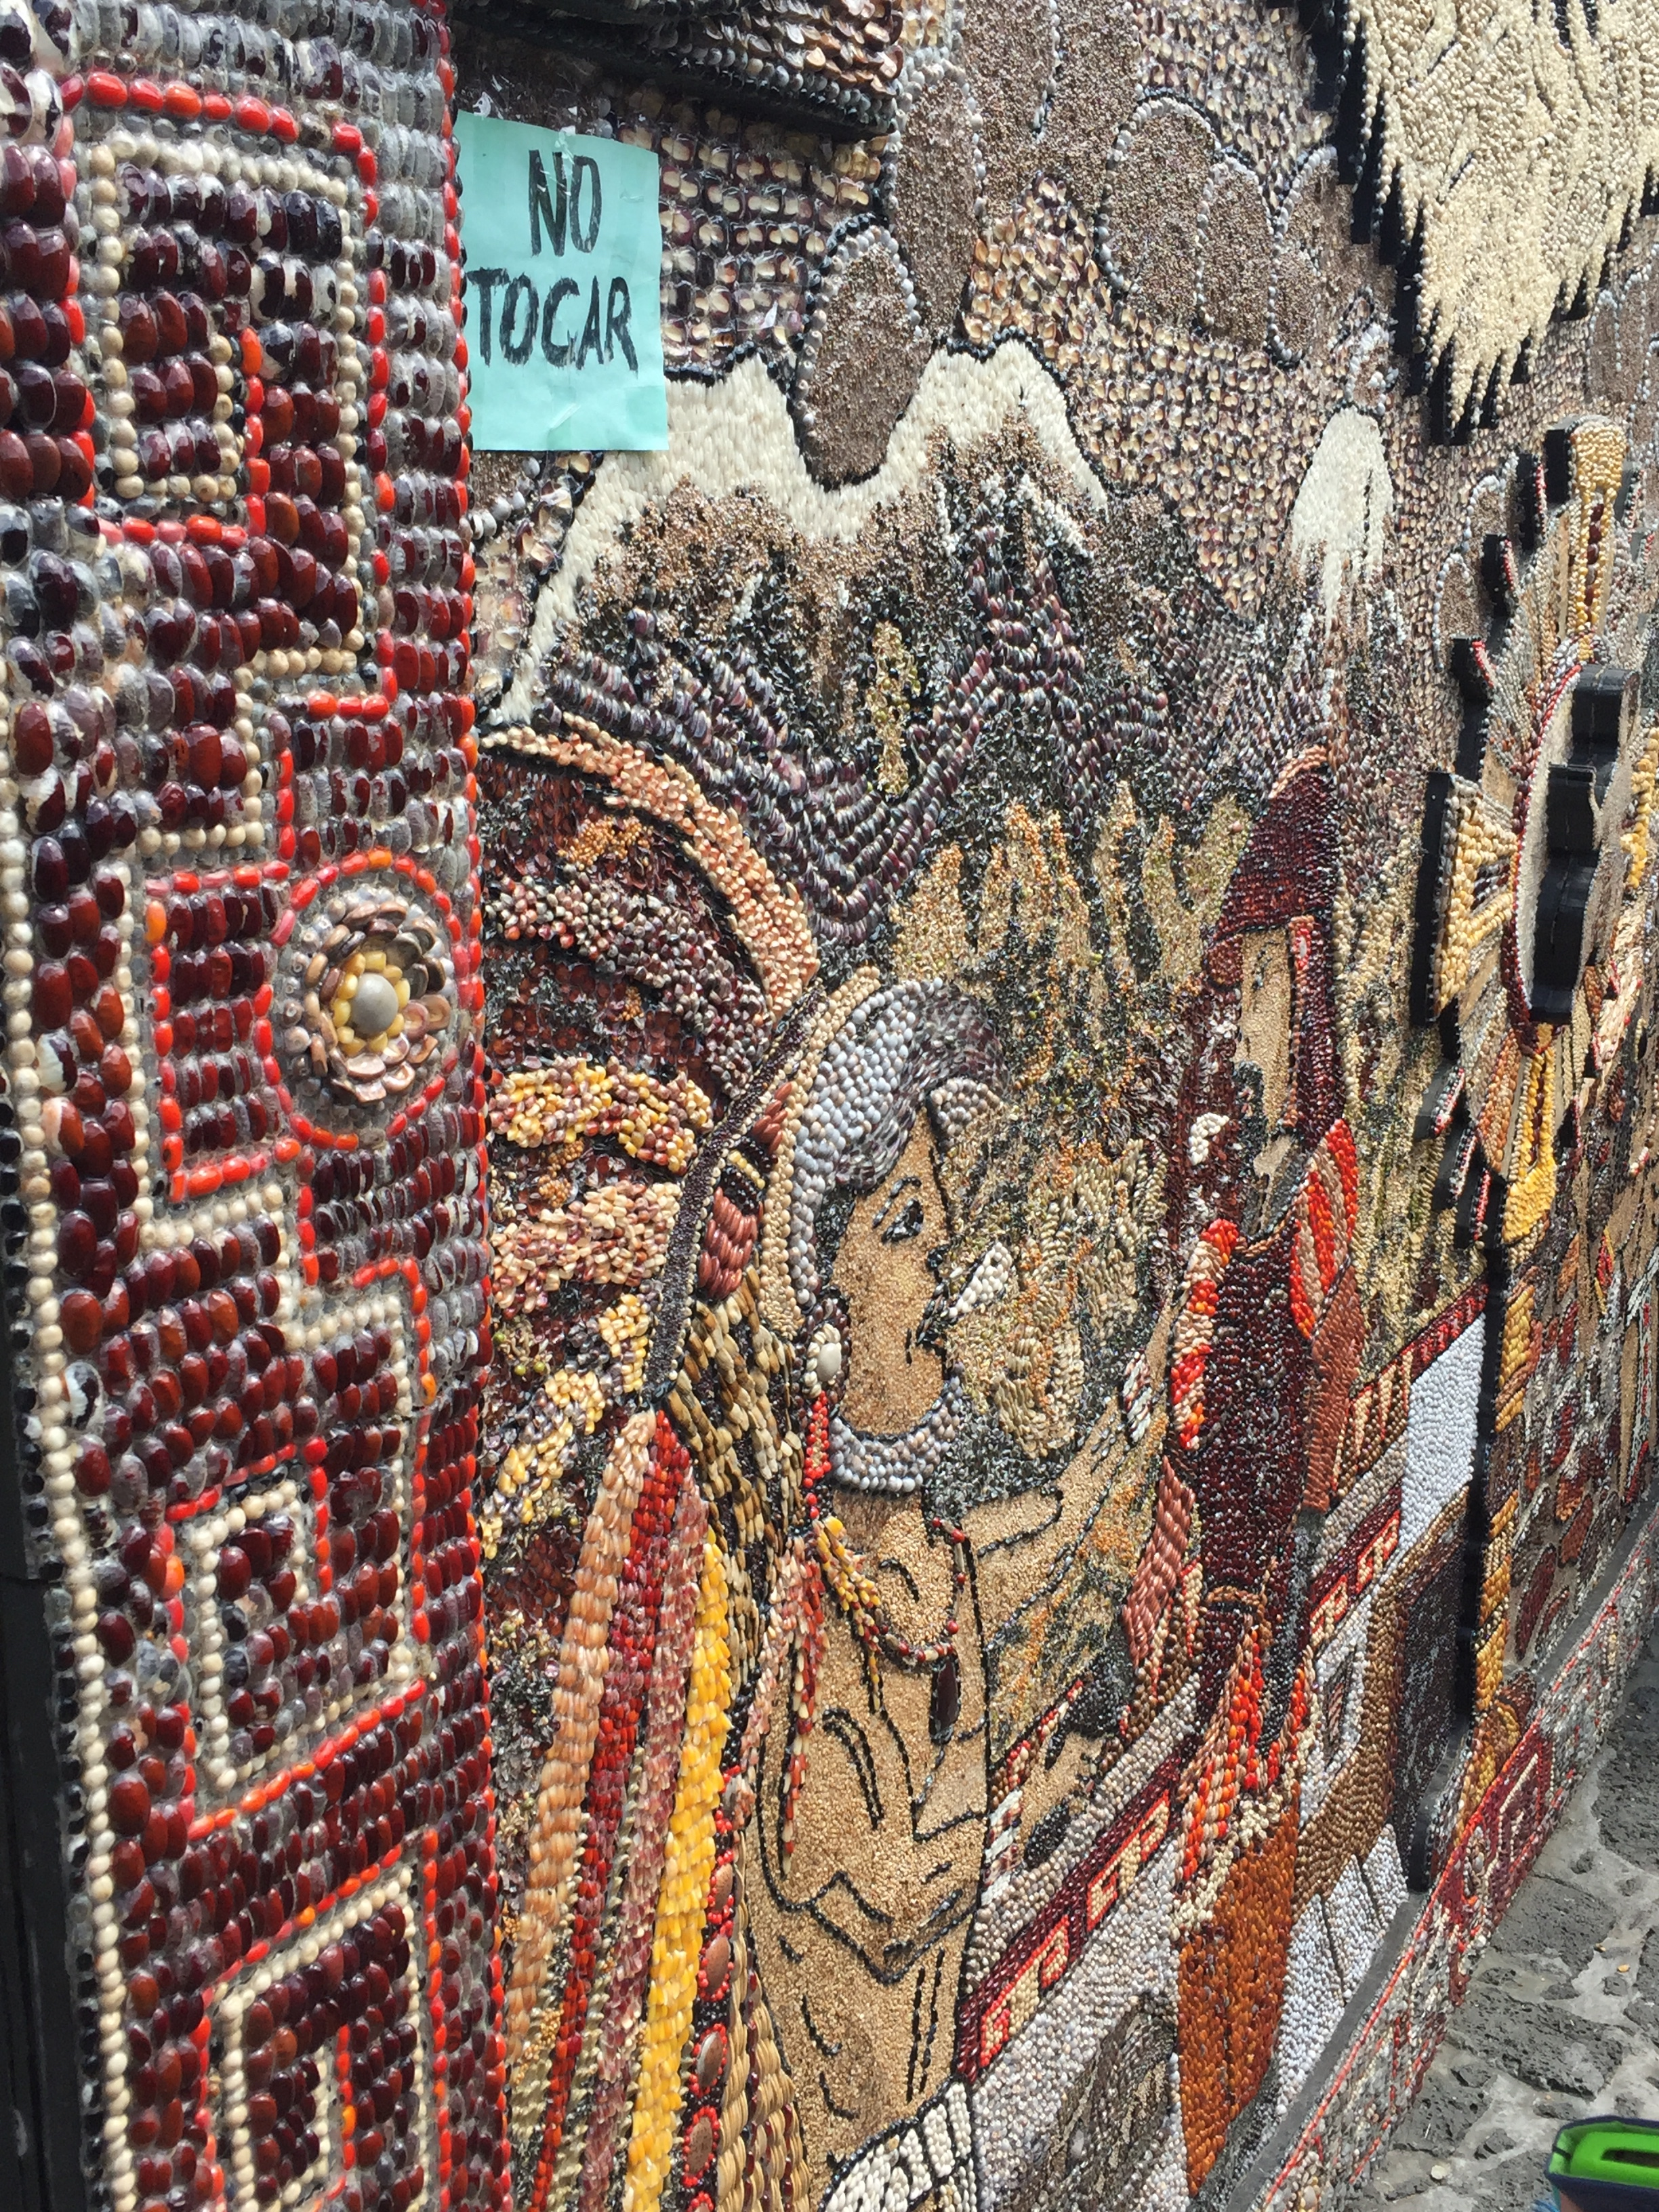 Intricate art made of seeds and beans in Tepoztlan.